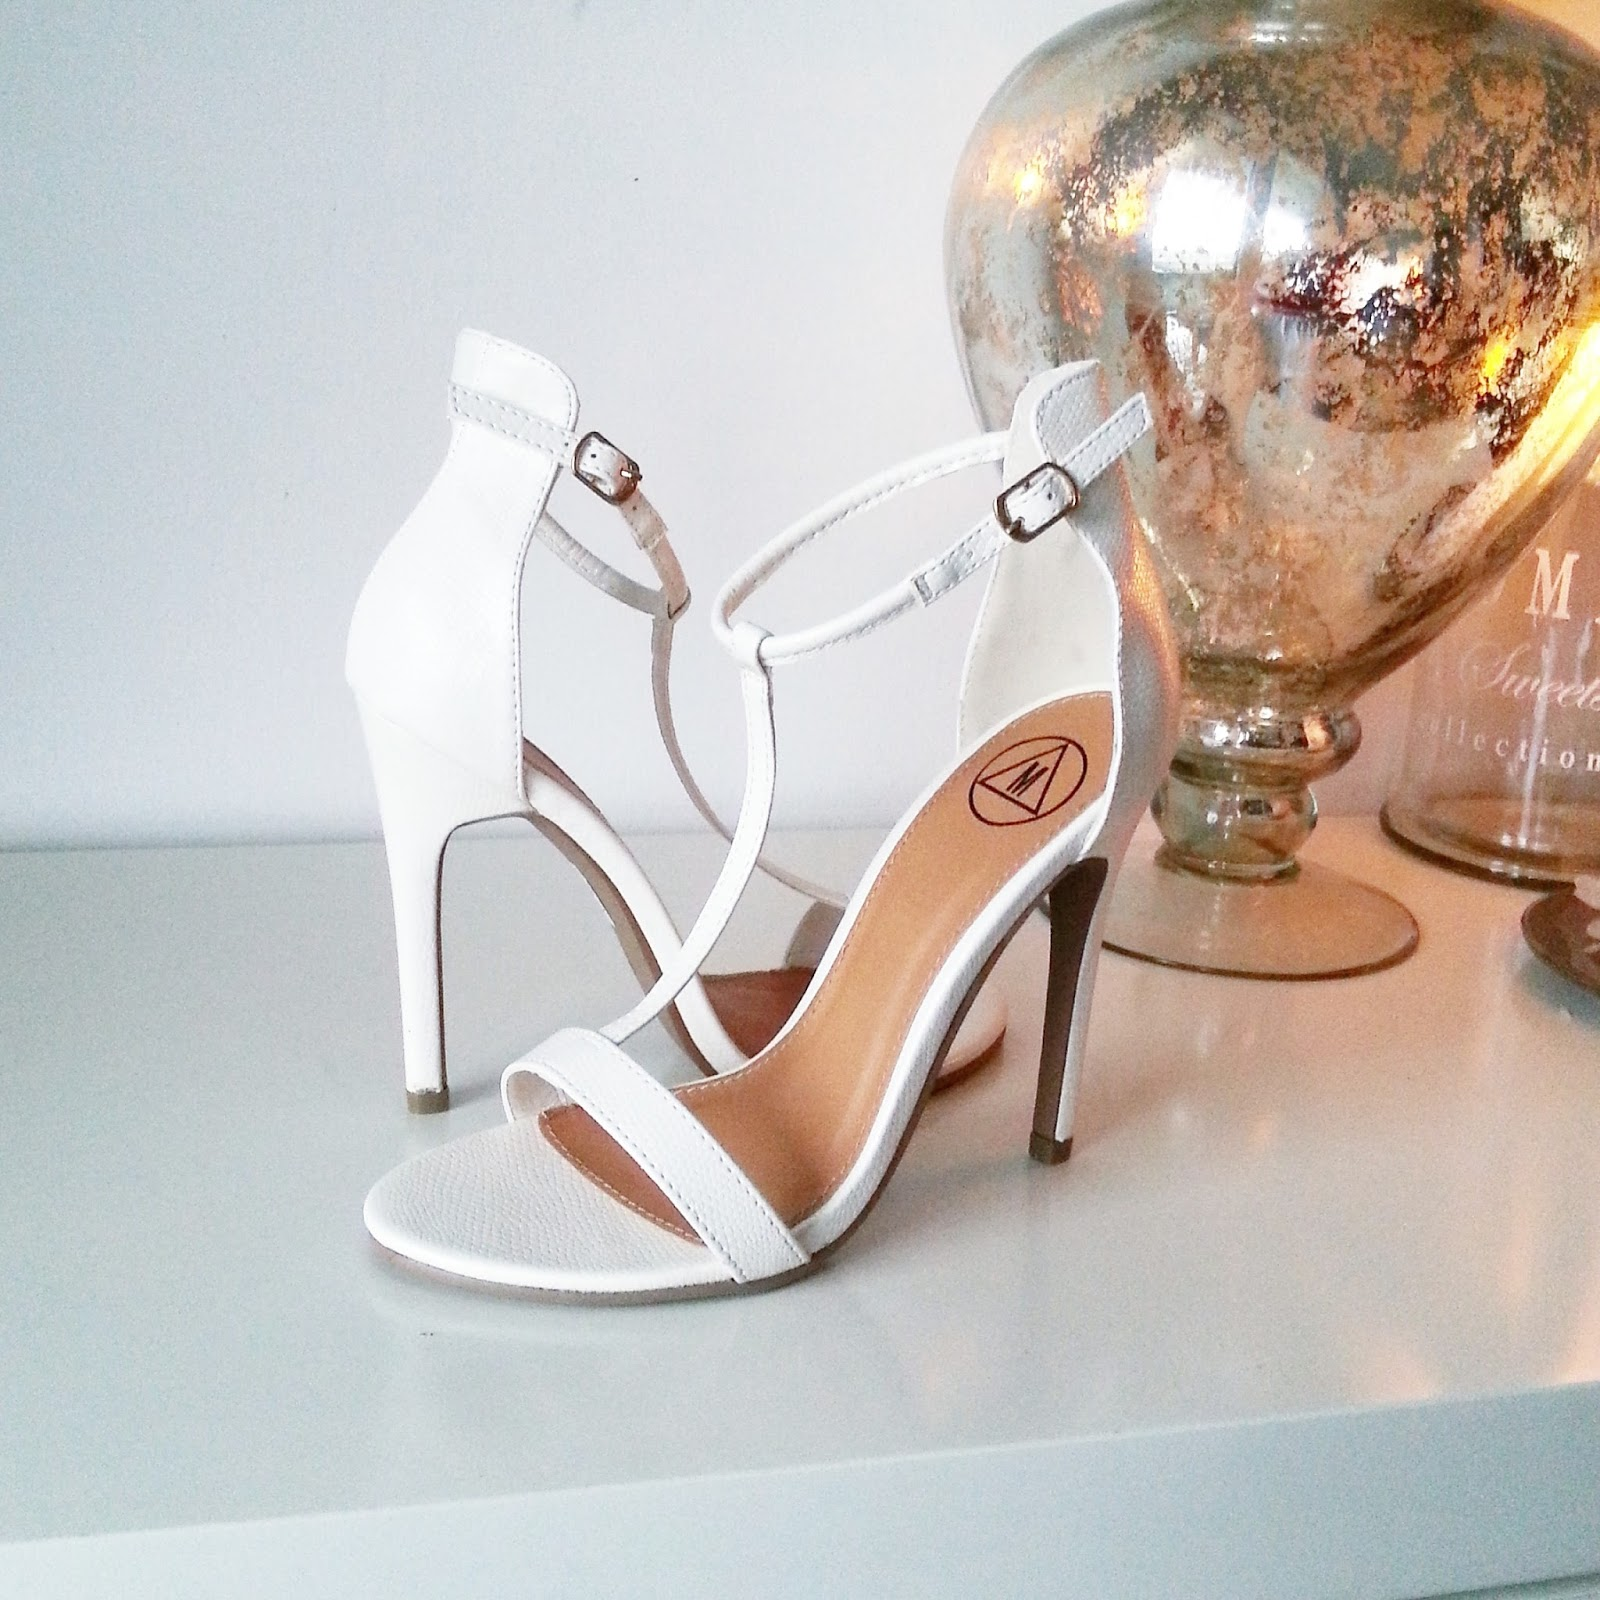 Missguided Jasmine T bar heeled sandal in white croc - glamorousgia gianni webster